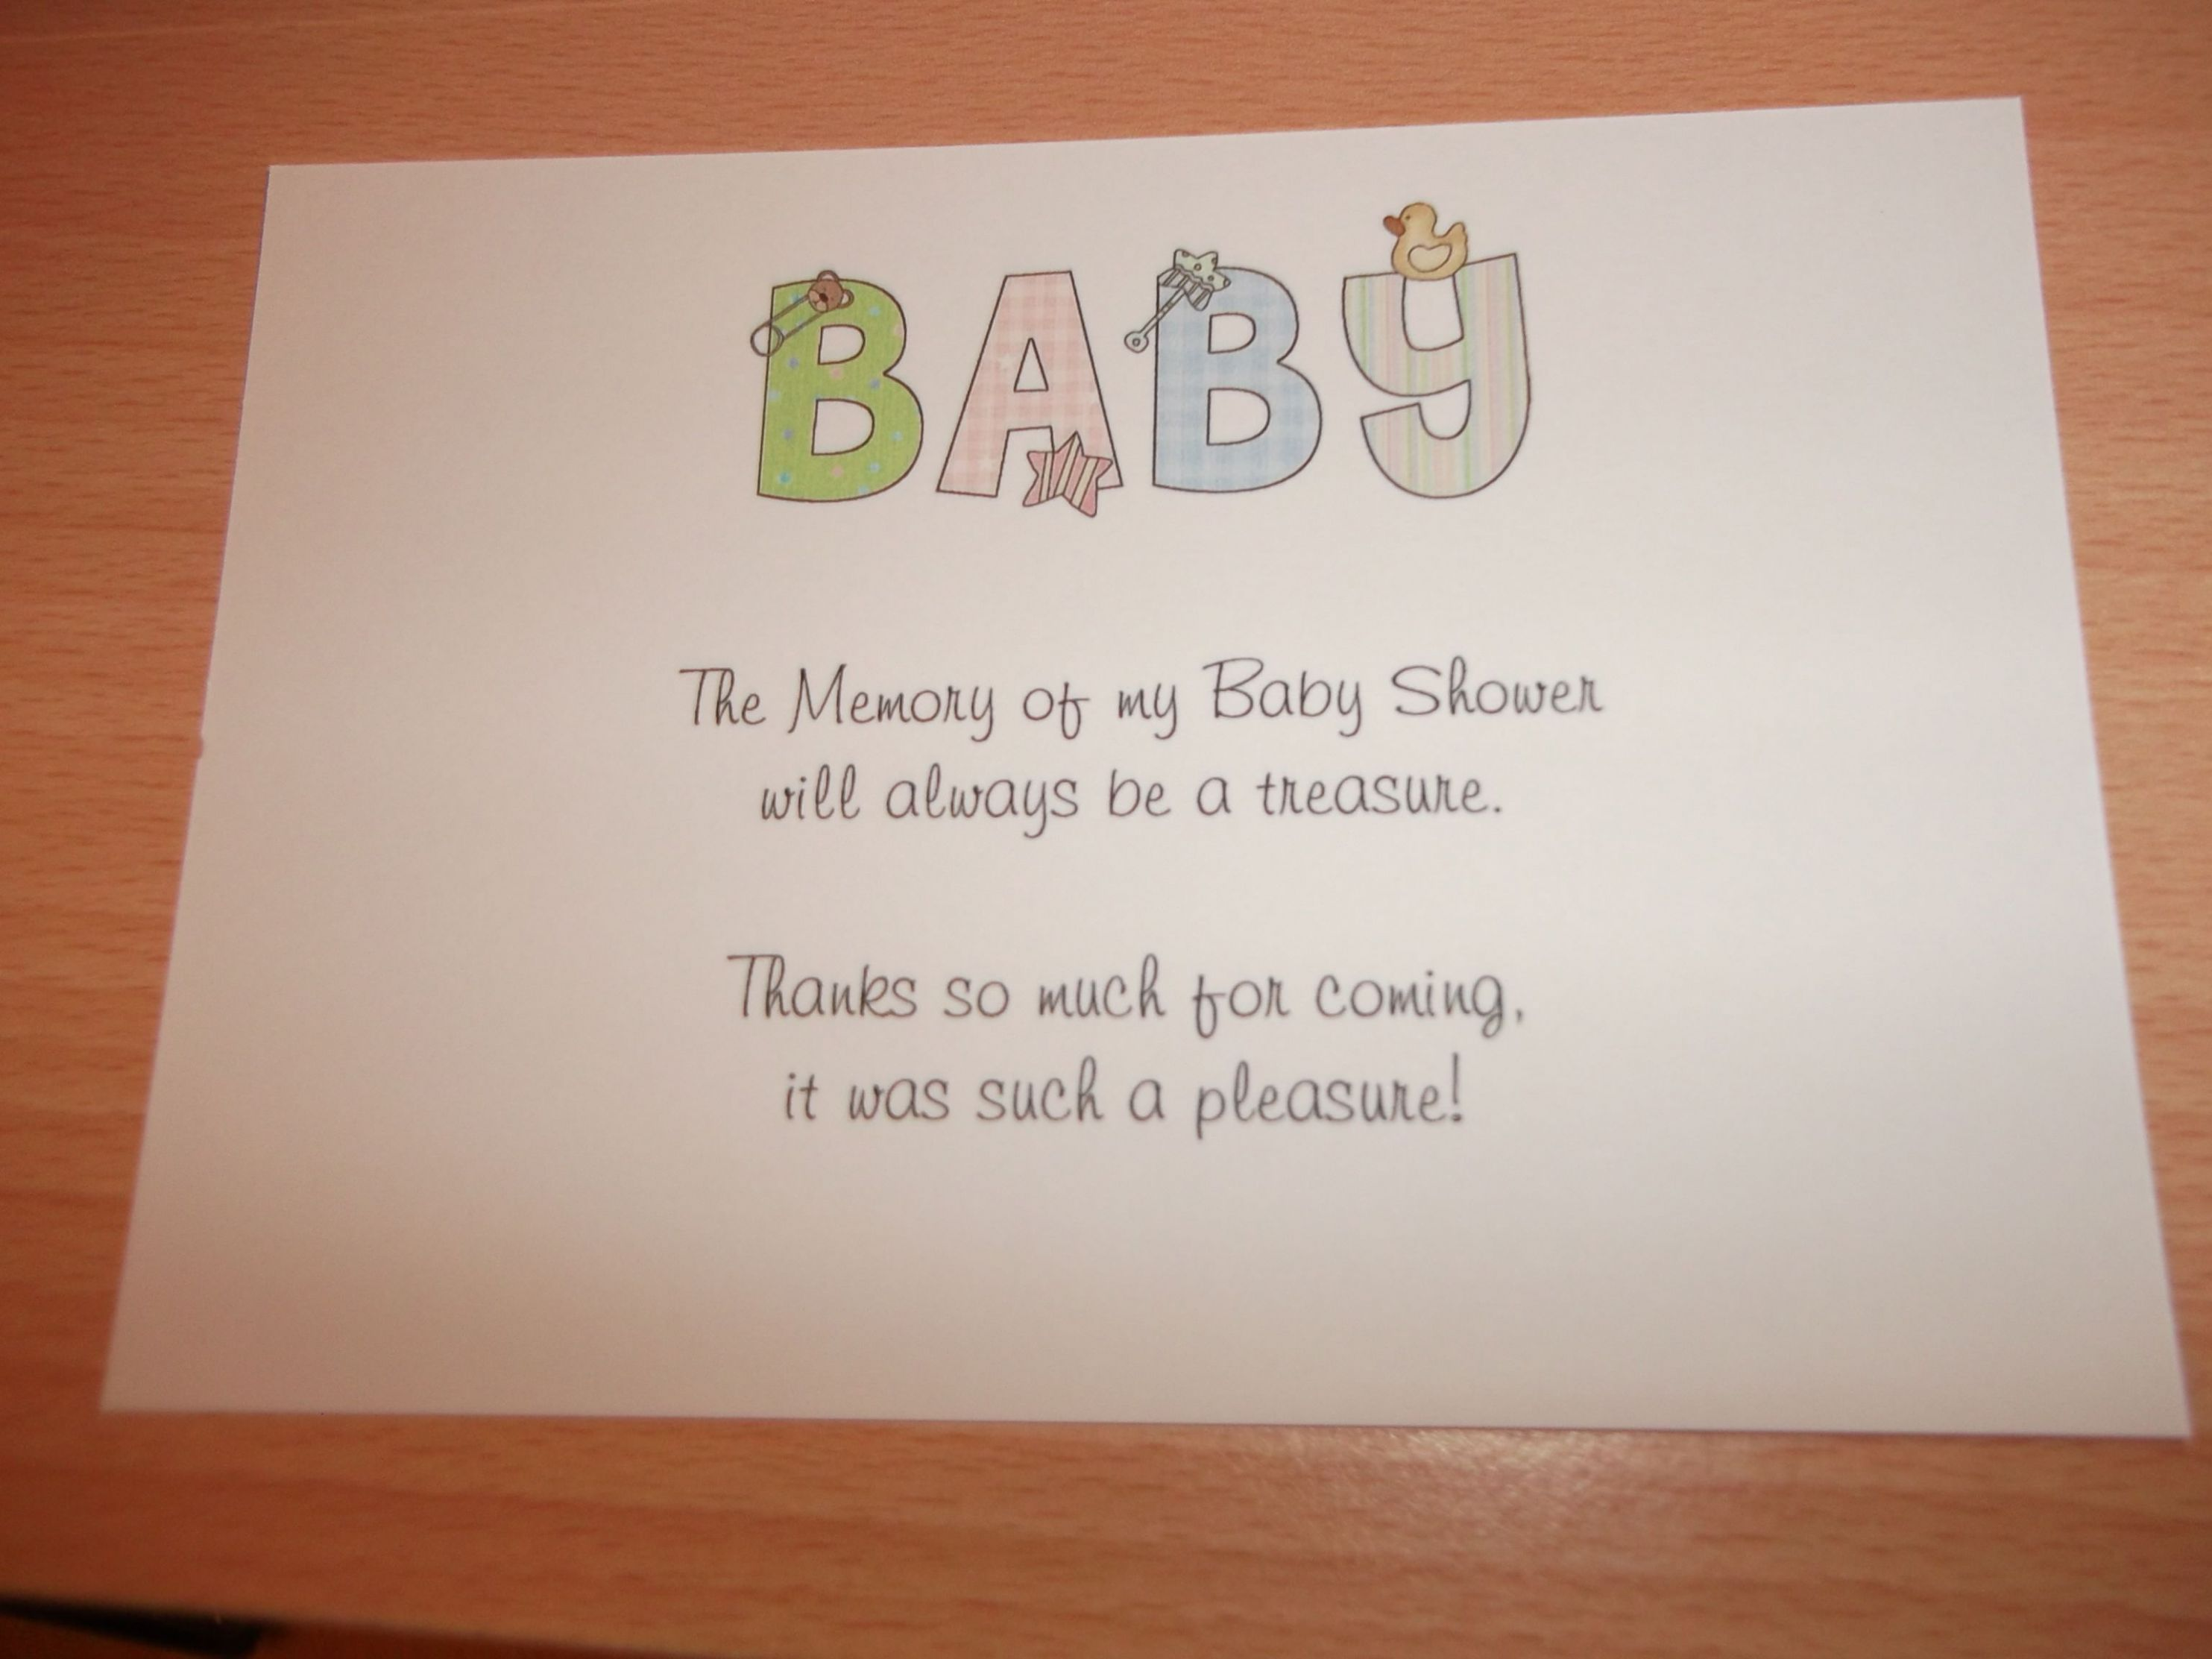 Baby Shower Thank You Gifts  Bing Images  Baby Things